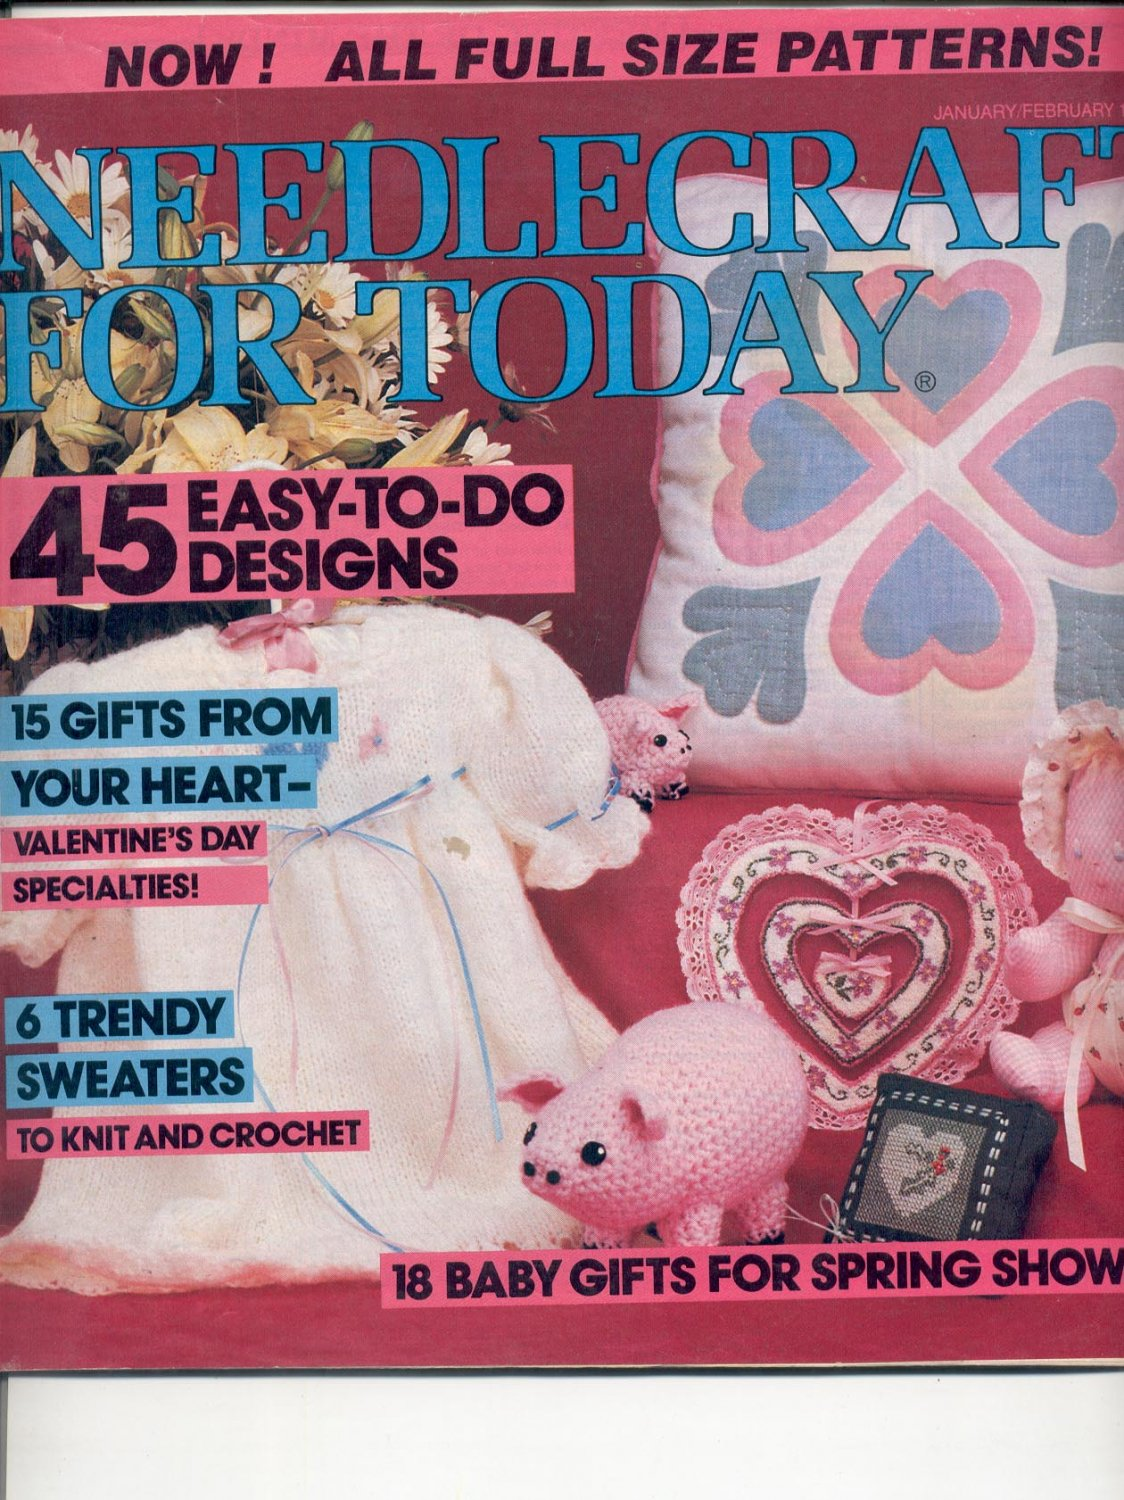 NEEDLECRAFT FOR TODAY CRAFT MAGAZINE JAN FEB 1985 w/ FULL SIZE PULL OUT PATTERNS NMINT